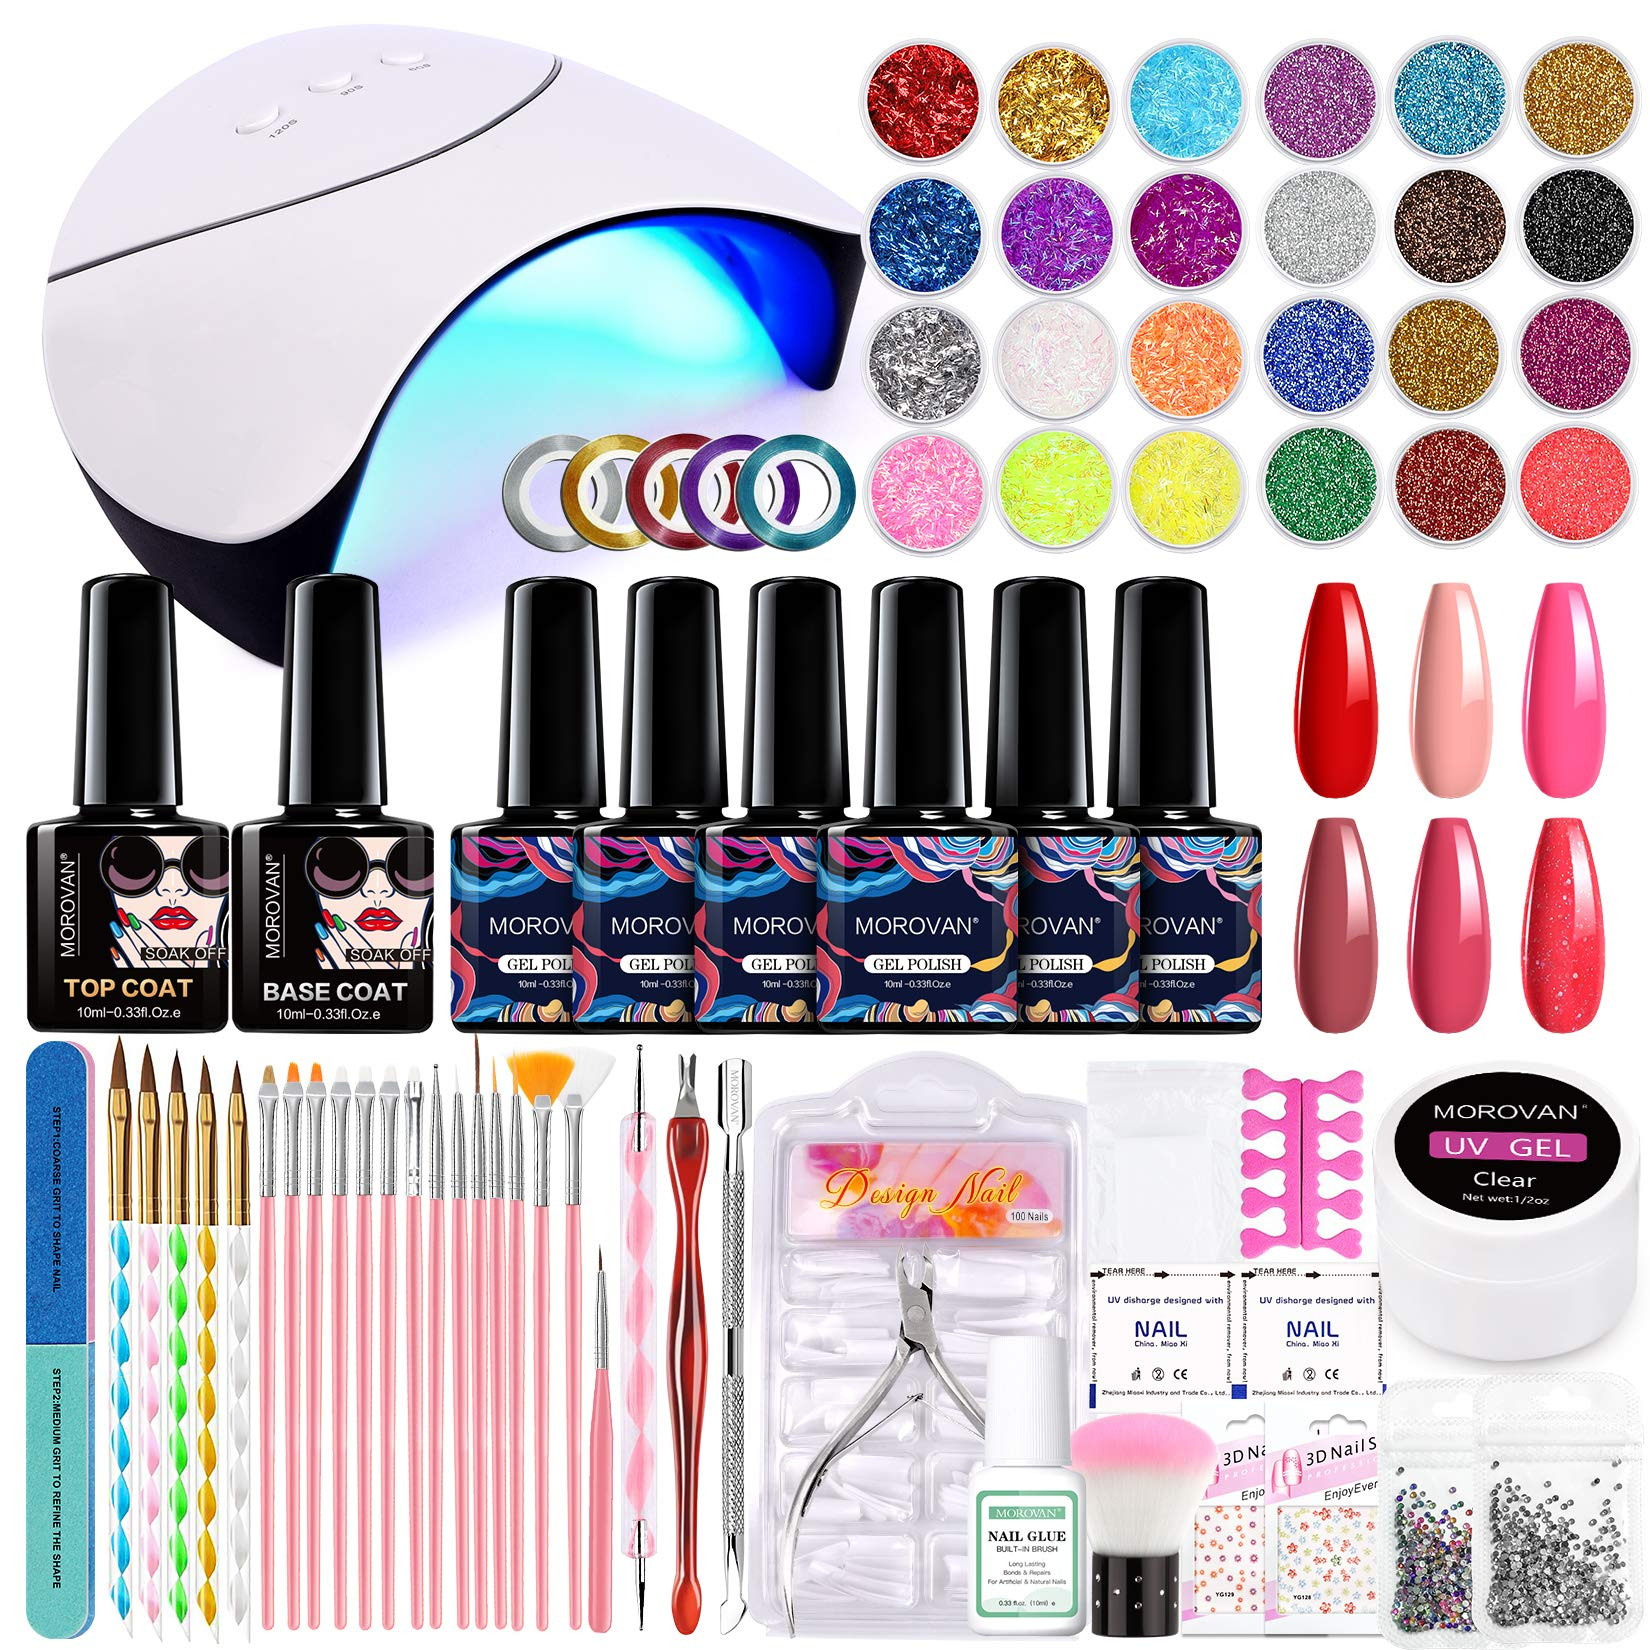 Morovan Gel Nail Kit with UV Light - Nail Kit for Beginners with Everything Nail Supplies 6 Colors Gel Nail Polish Set with Glitter and Sequins, 36W LED Nail Lamp,Base Top Coat Nail Tools